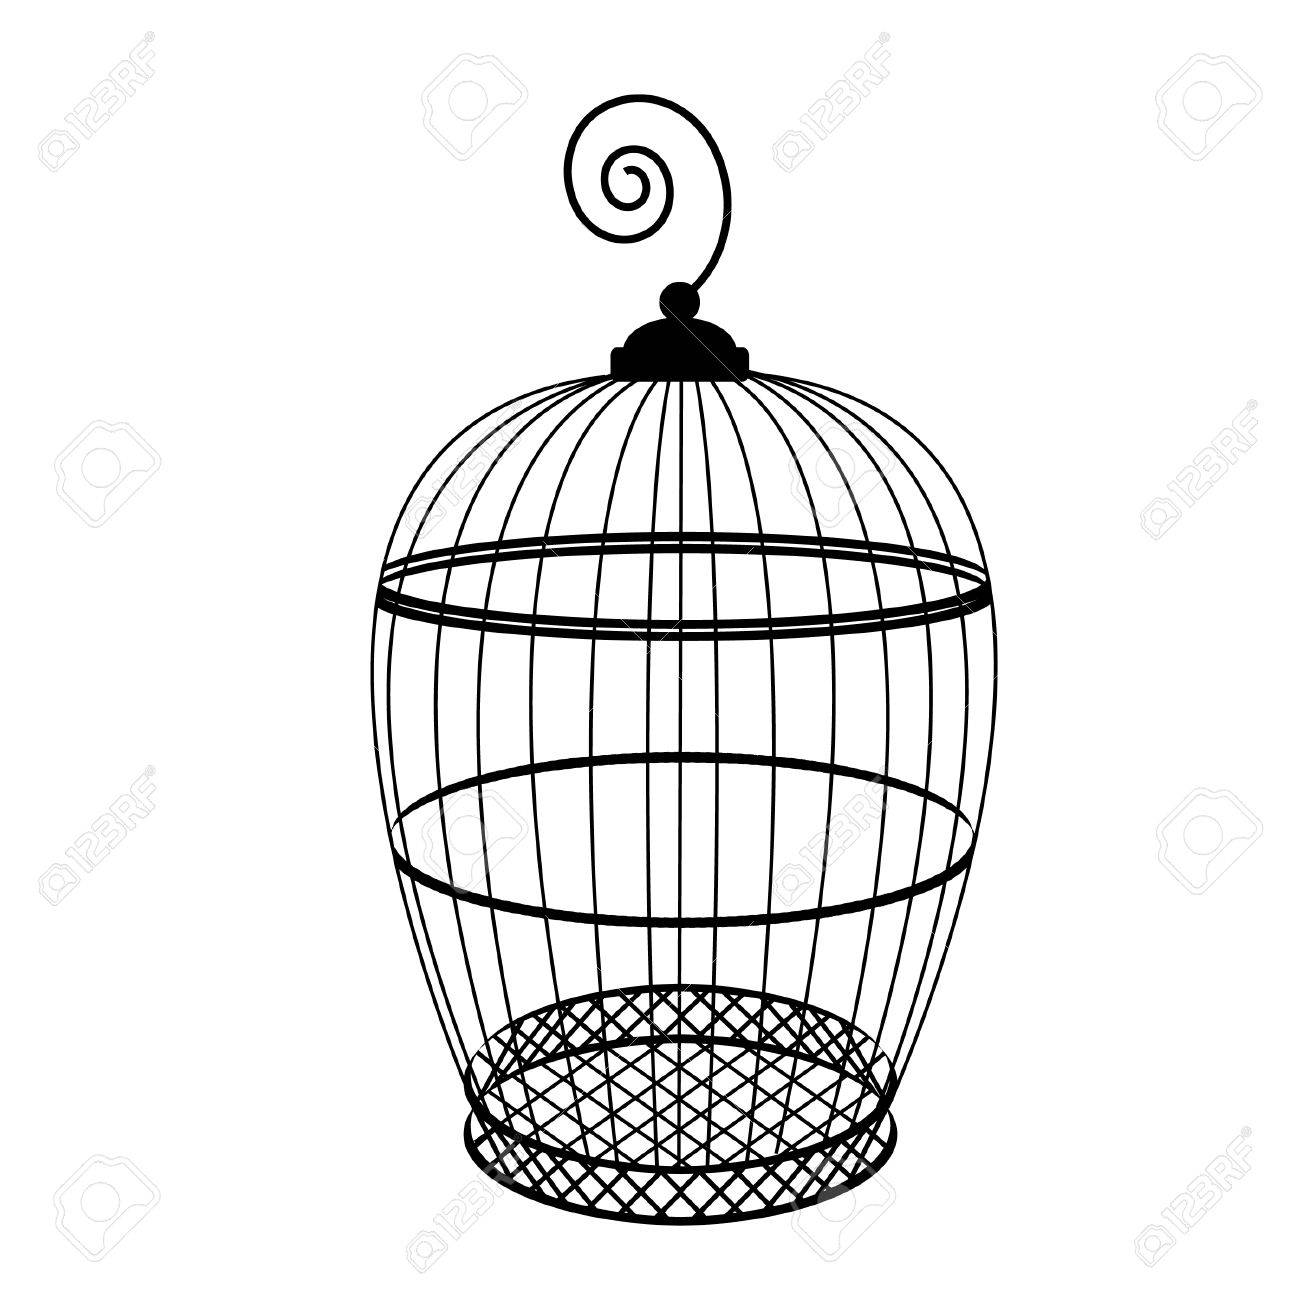 1300x1300 Birdcage Vector Isolated, Bird Cage Silhouette, Vintage Birdcage